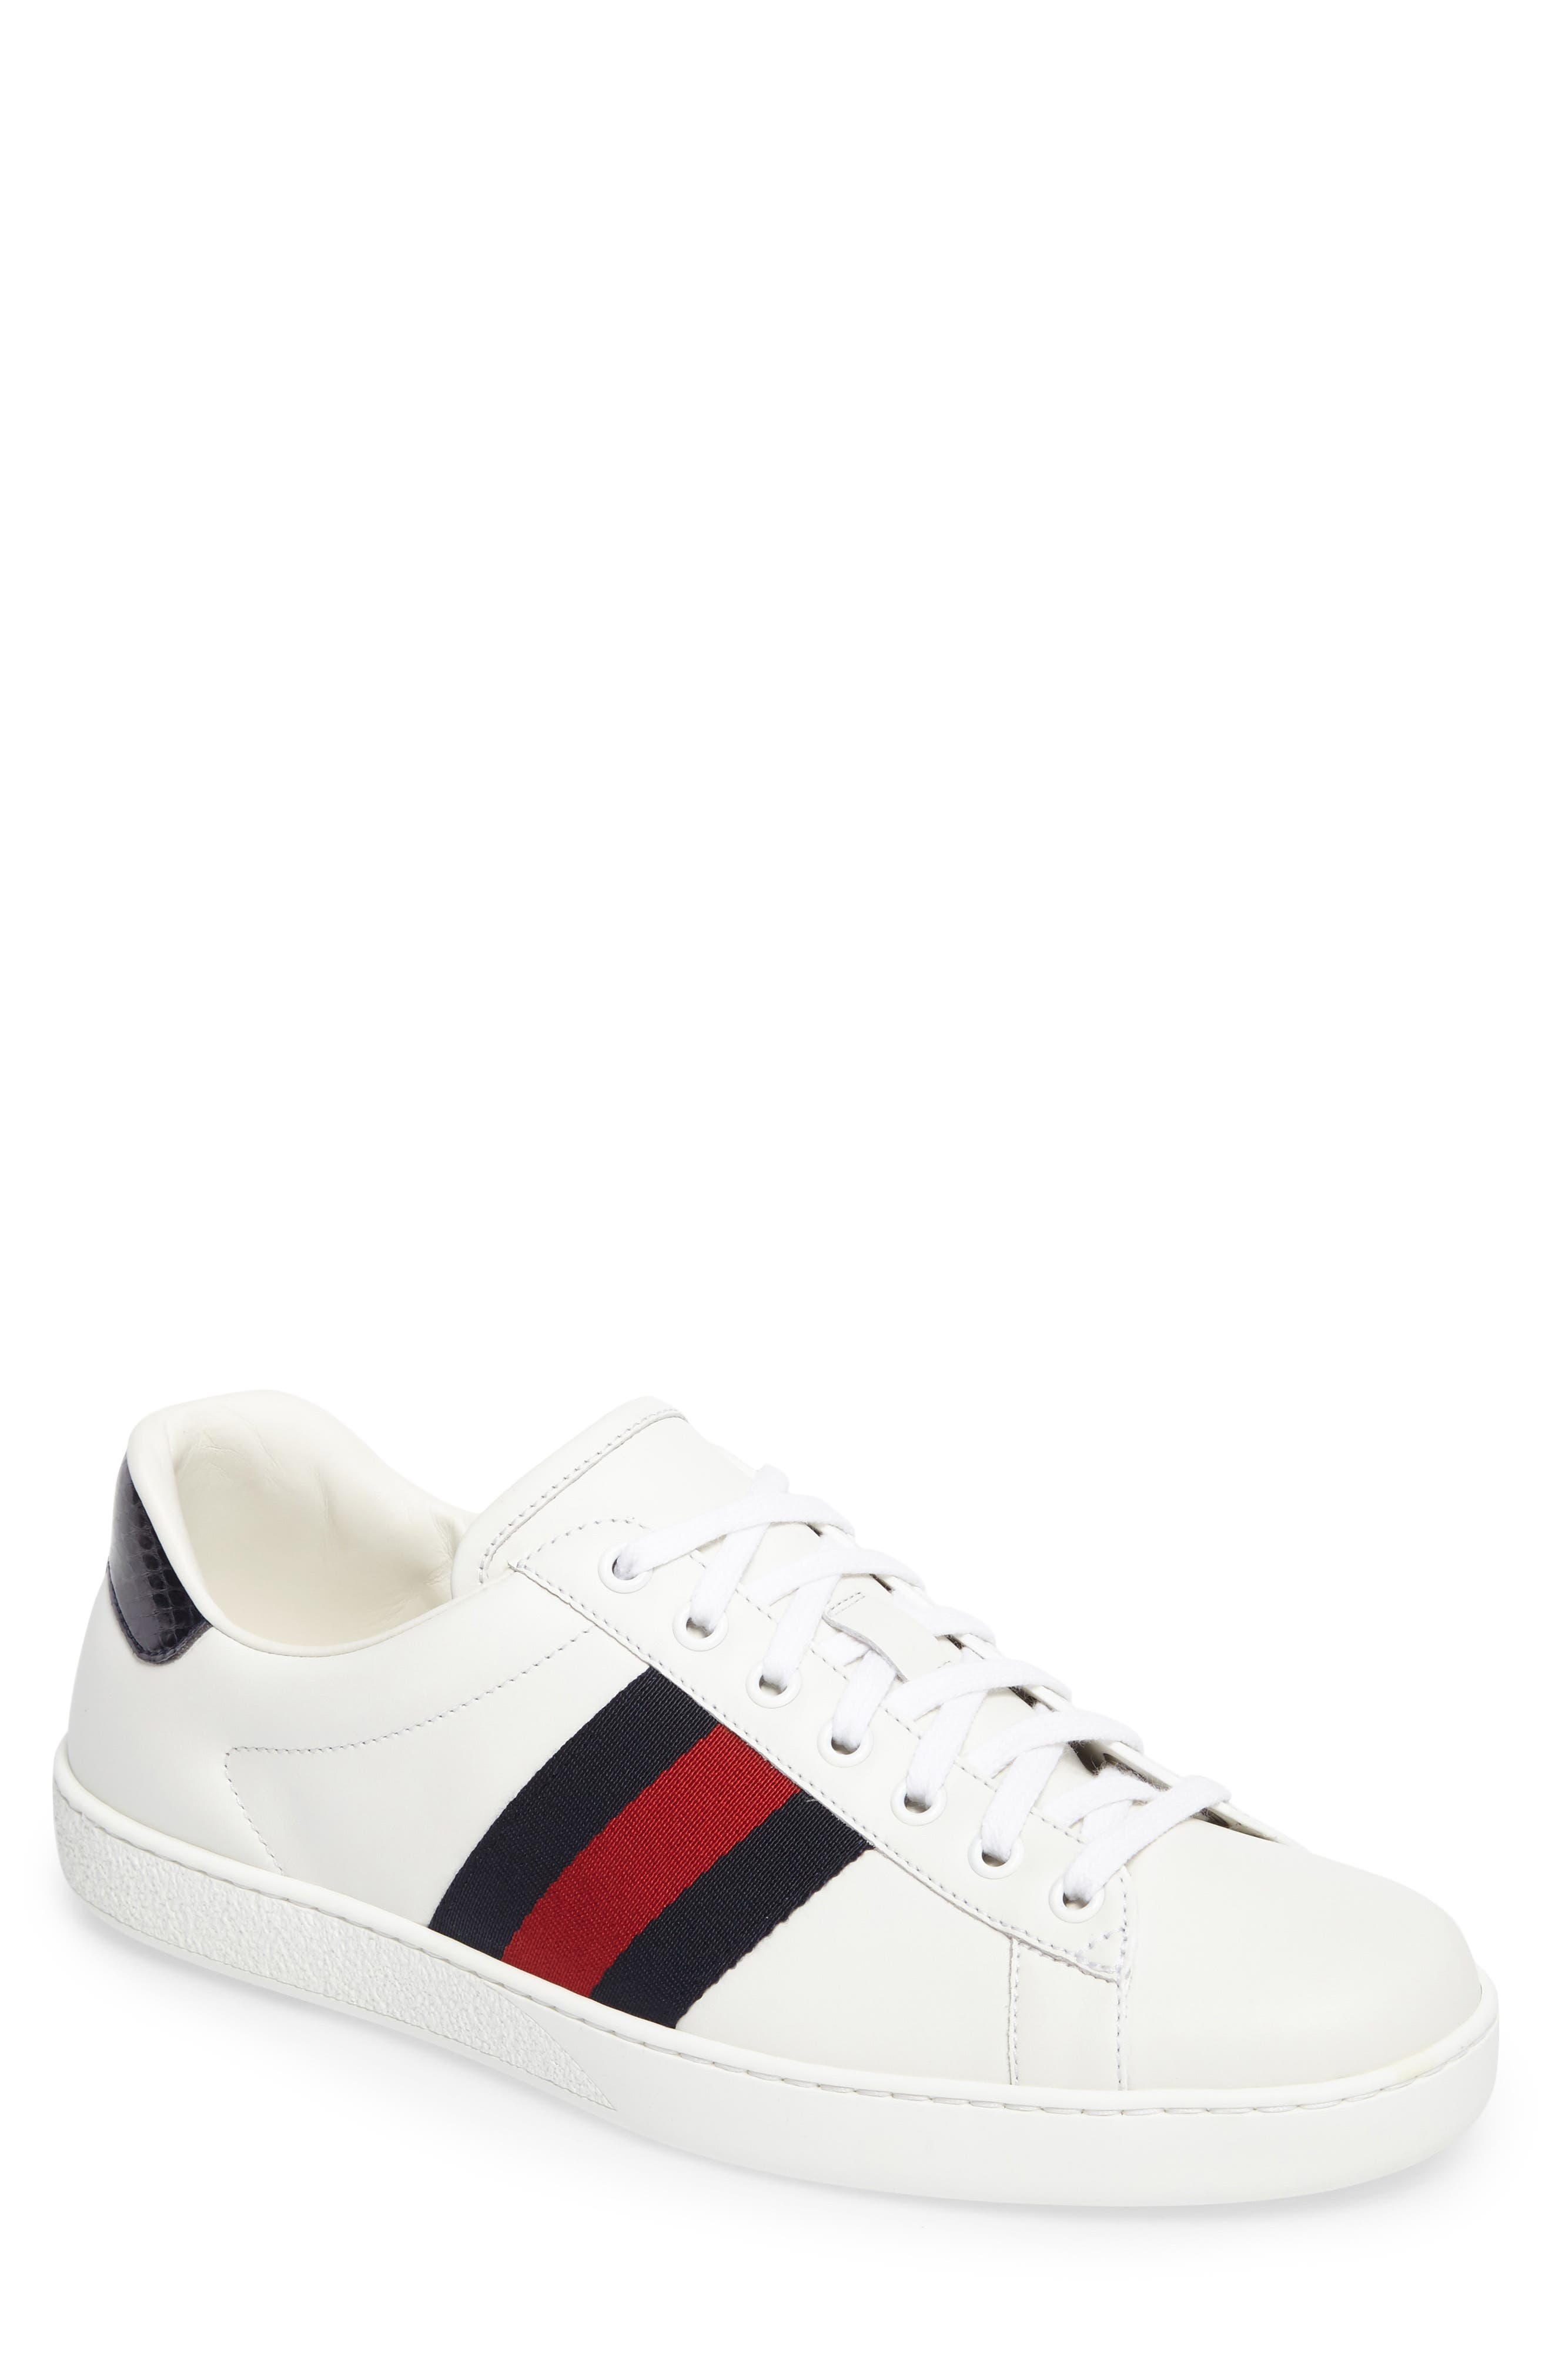 New Ace Clean Sneaker,                             Main thumbnail 1, color,                             Bianco